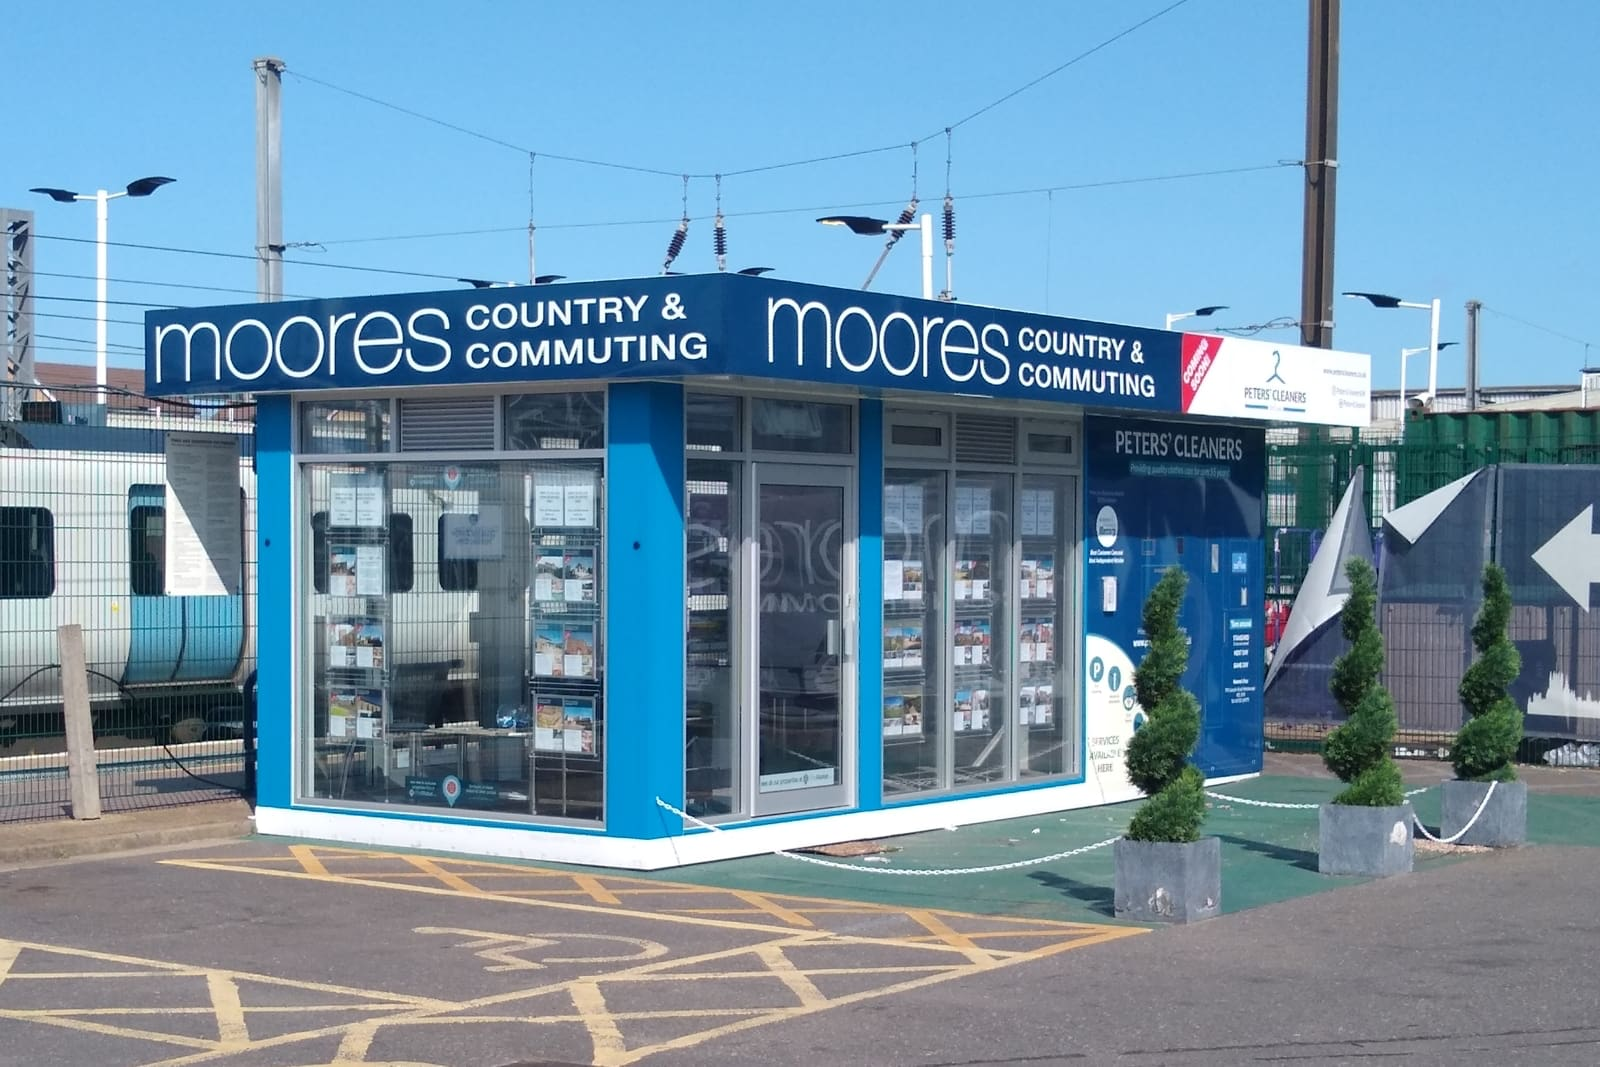 Moores Country & Commuting